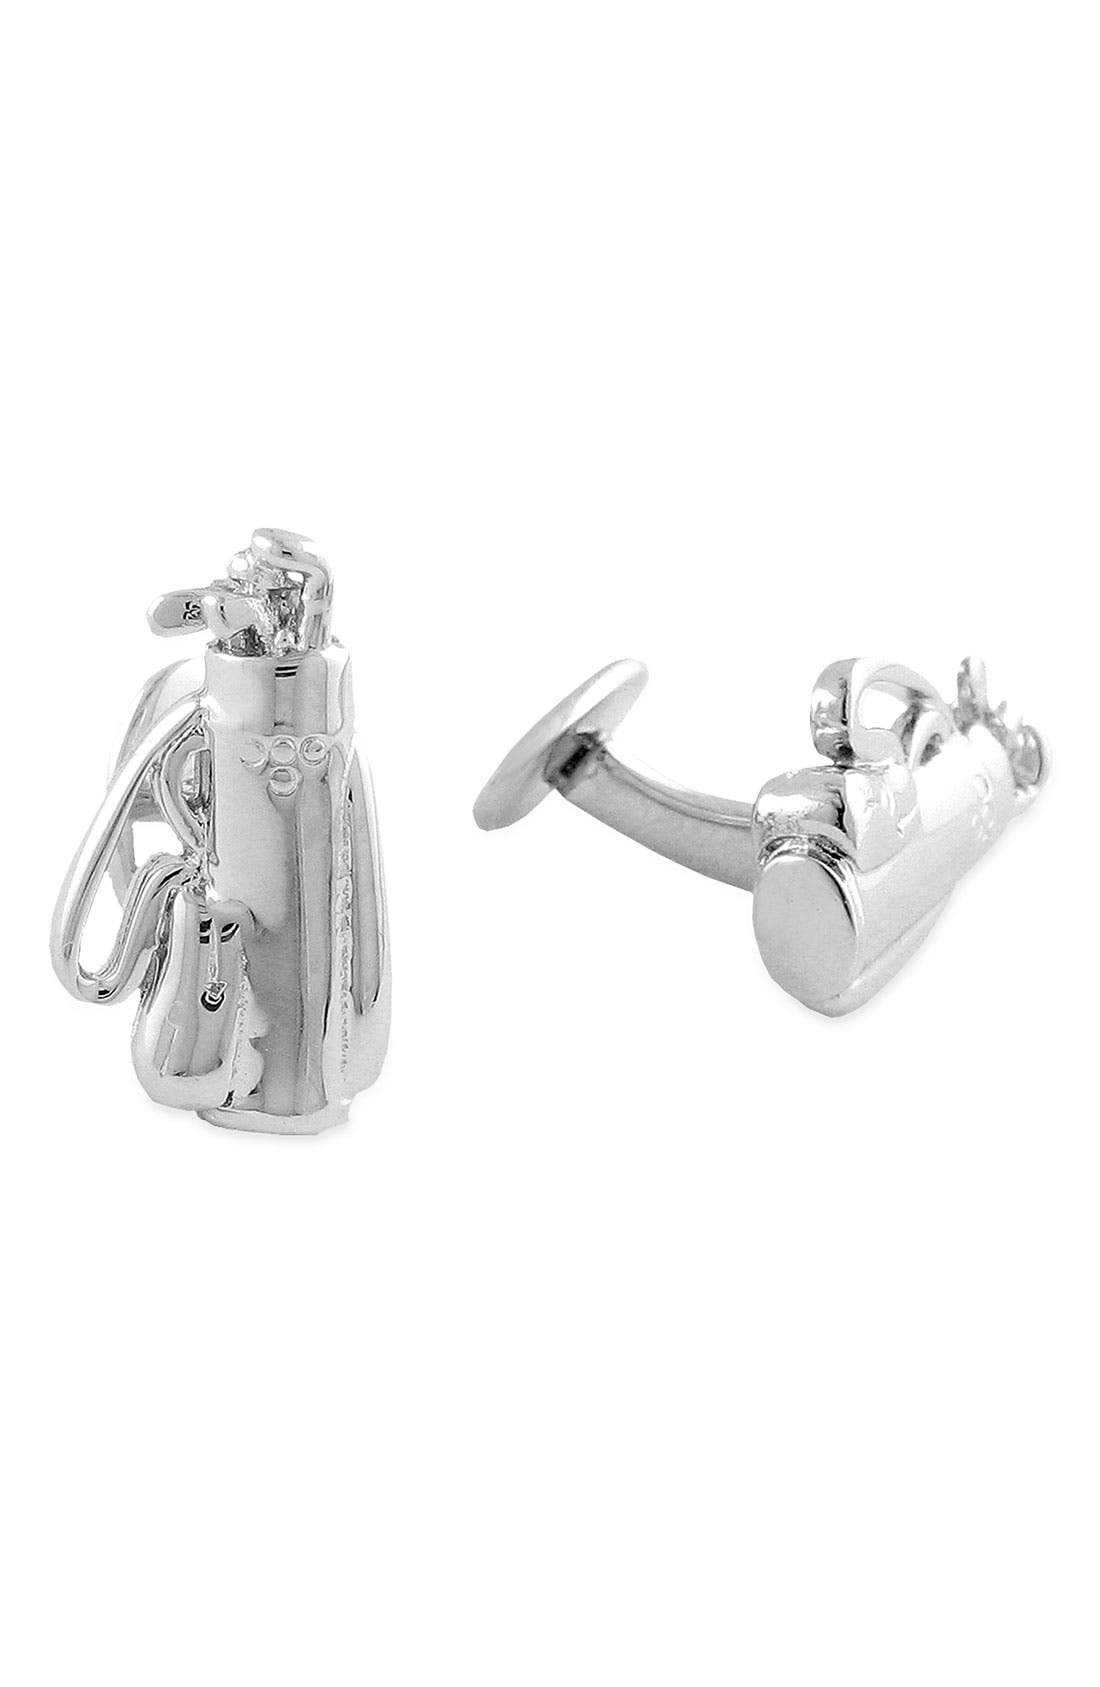 DAVID DONAHUE Golf Sterling Silver Cuff Links